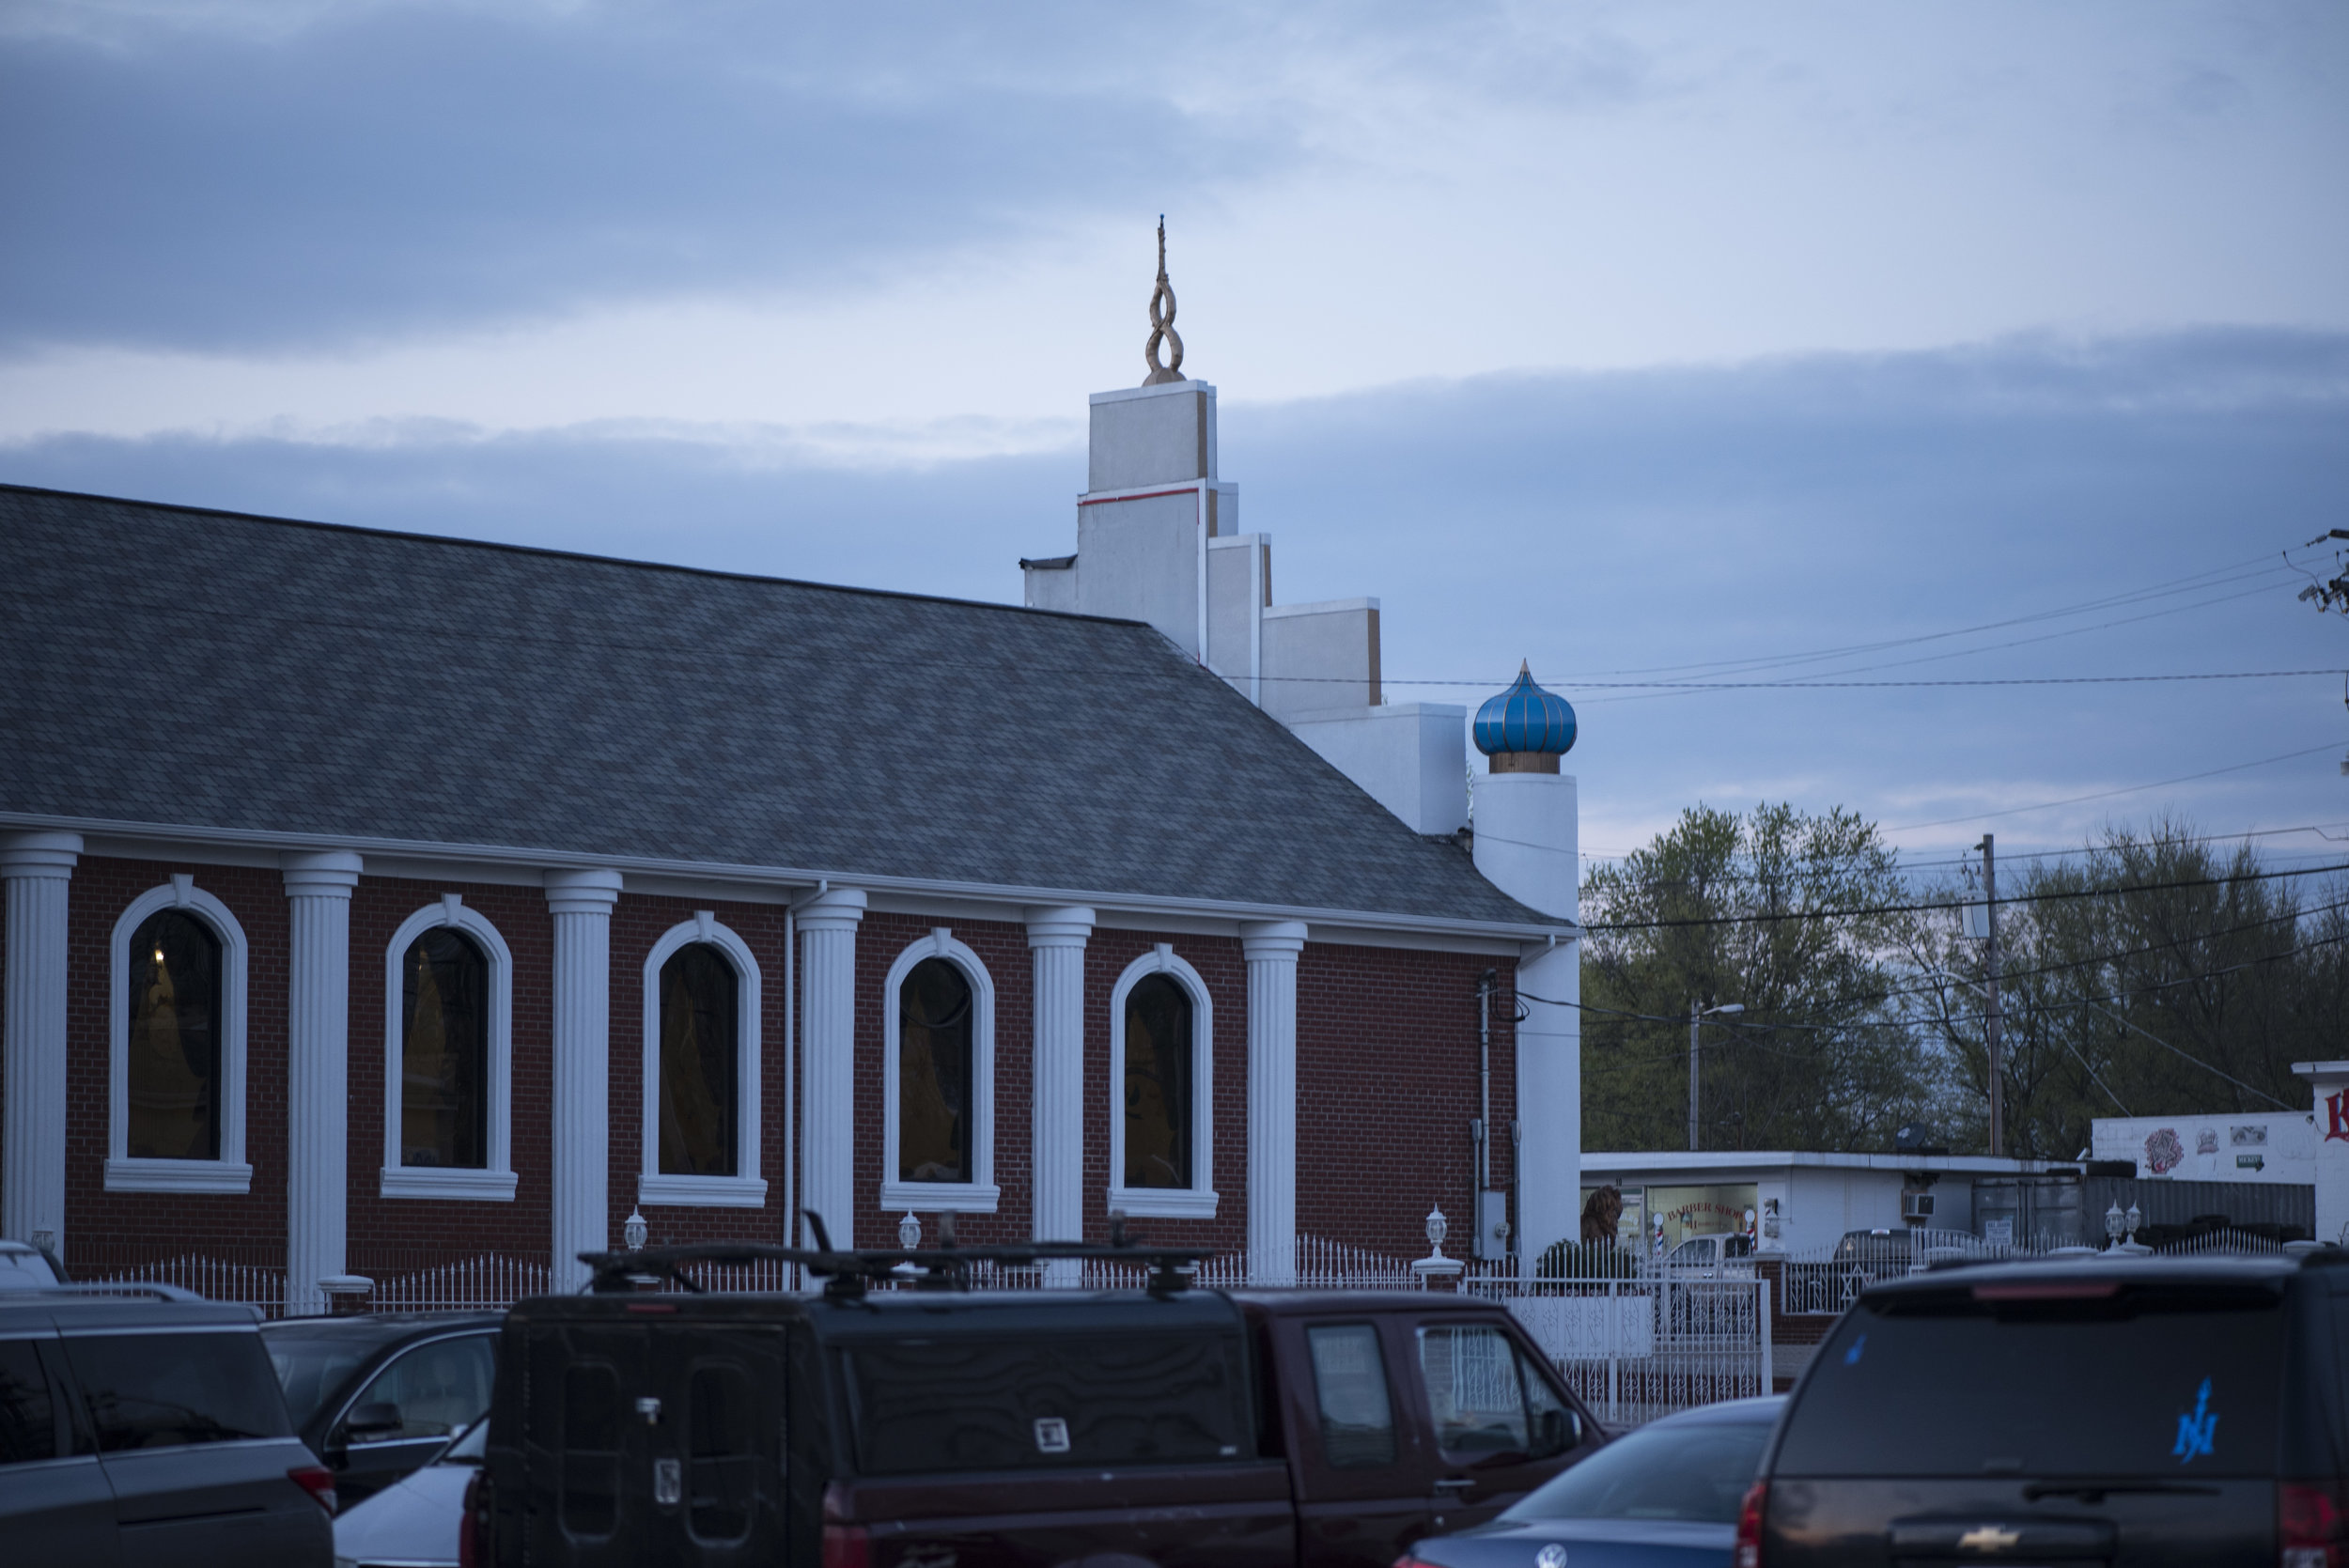 Vehicles sit vacant in a gravel parking lot off of Clay Street as owners and occupants worship across the street in the sanctuary of the Light of the World church.